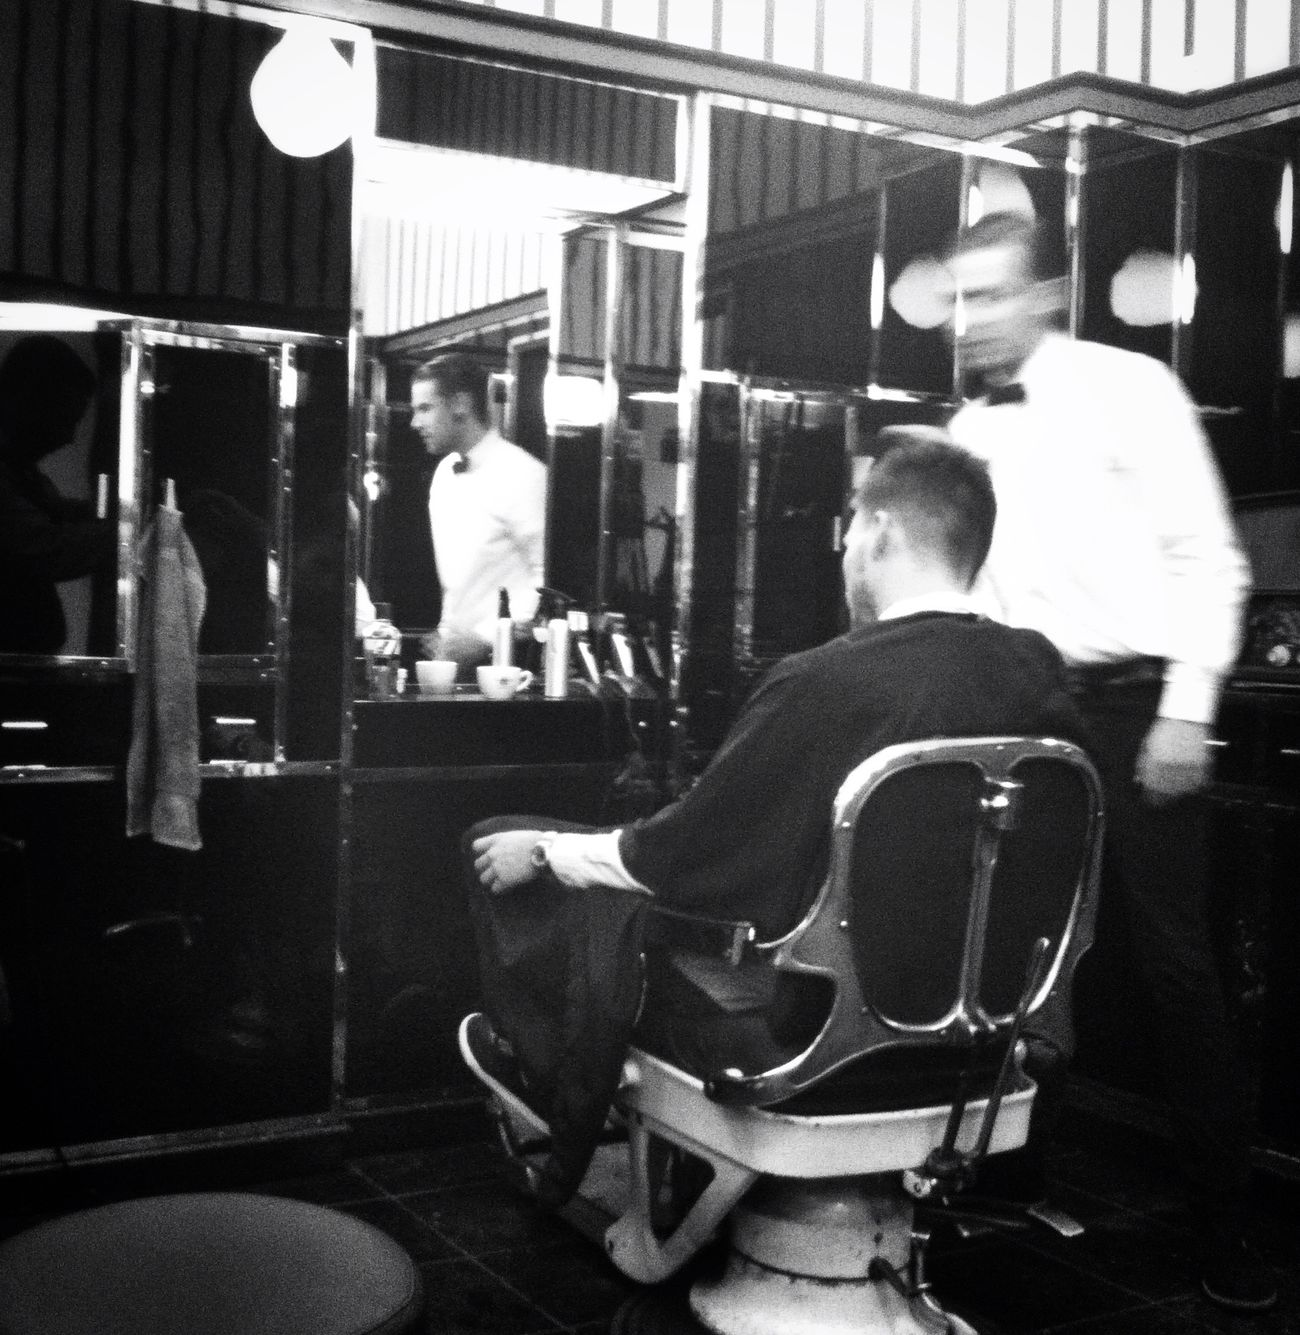 getting my beard trimmed Barber Blackandwhite